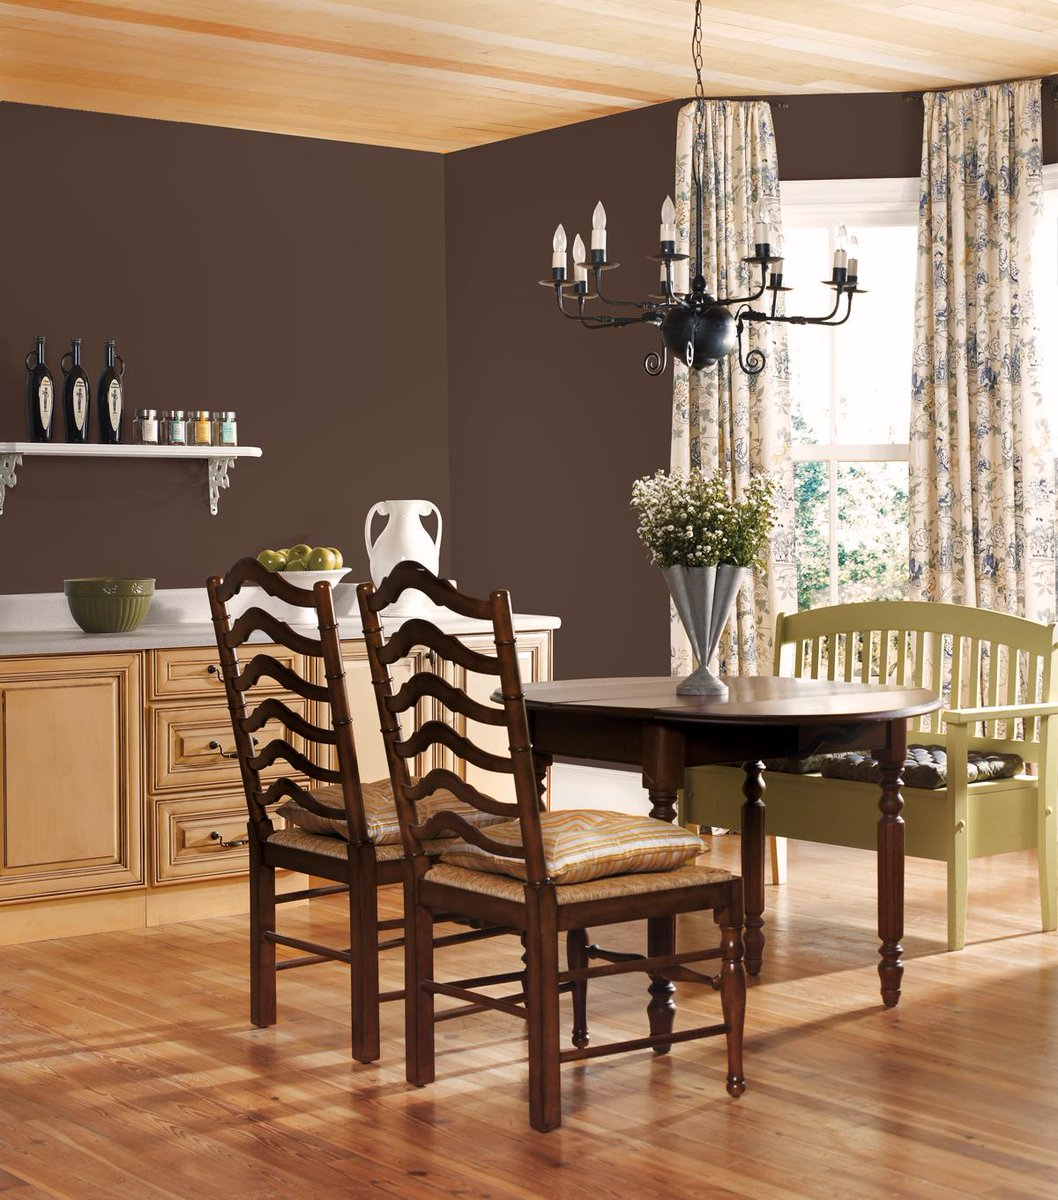 Sherwin Williams On Twitter Pull Up A Seat And Pour Yourself Cup Turkish Coffee Sw 6076 Walls Inspired By Nationalcoffeeday Http T Co 7uckwvvaln